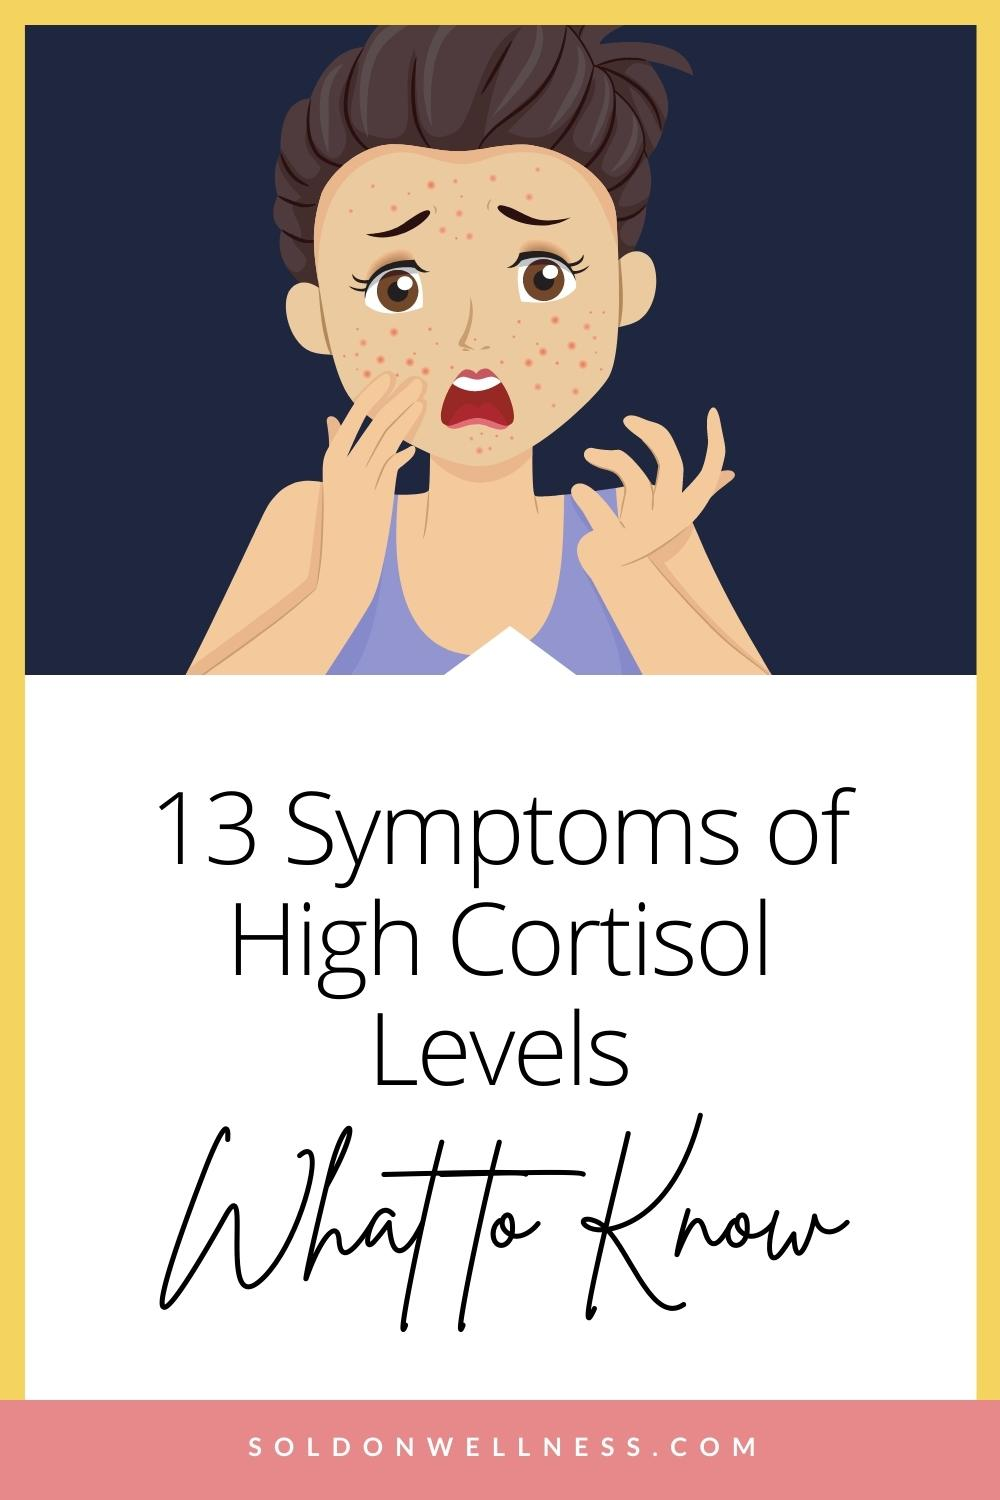 Symptoms of High Cortisol Levels